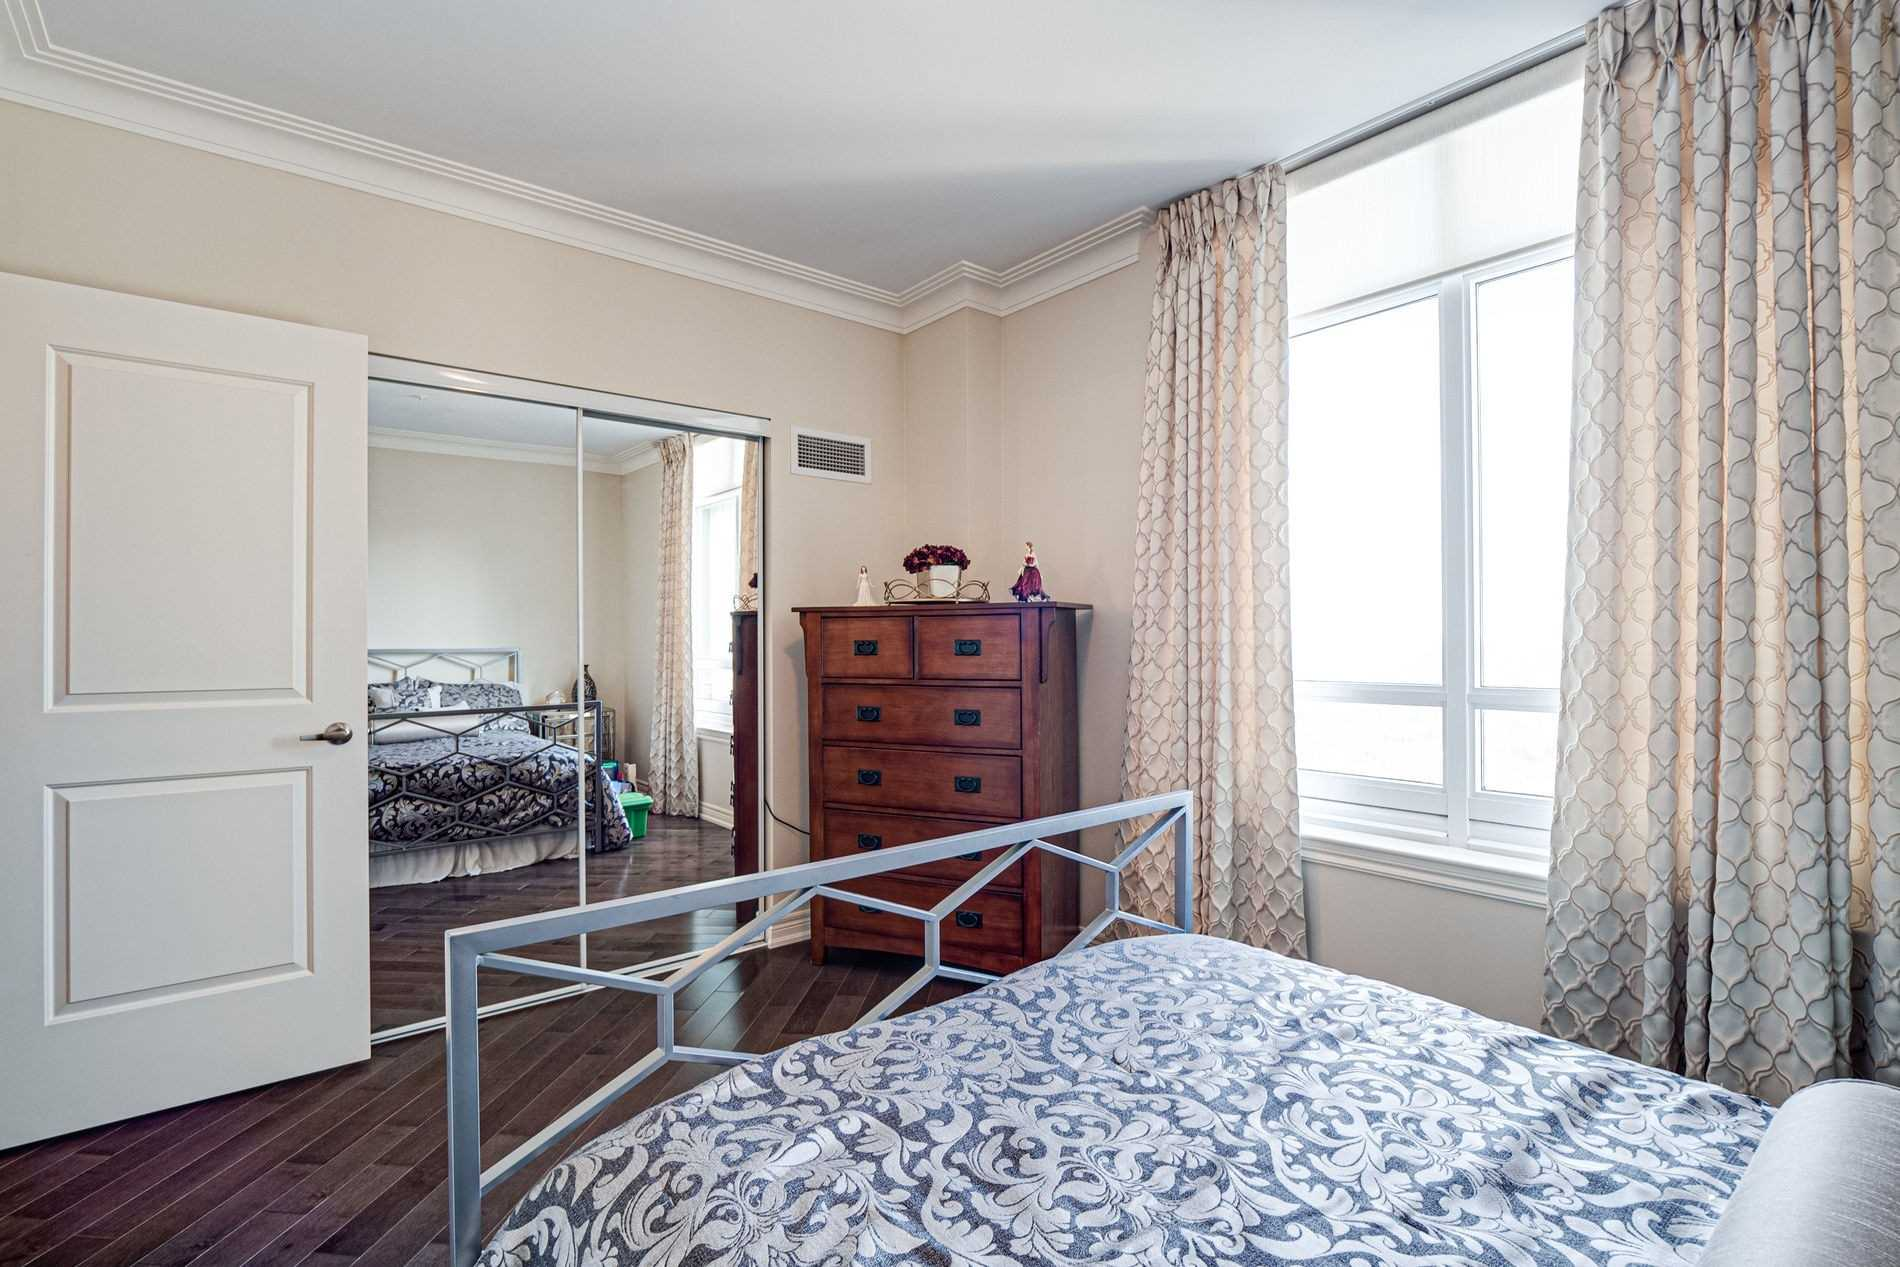 Image 24 of 40 showing inside of 2 Bedroom Condo Apt Apartment for Sale at 9255 Jane St Unit# 1702, Vaughan L6A0K1